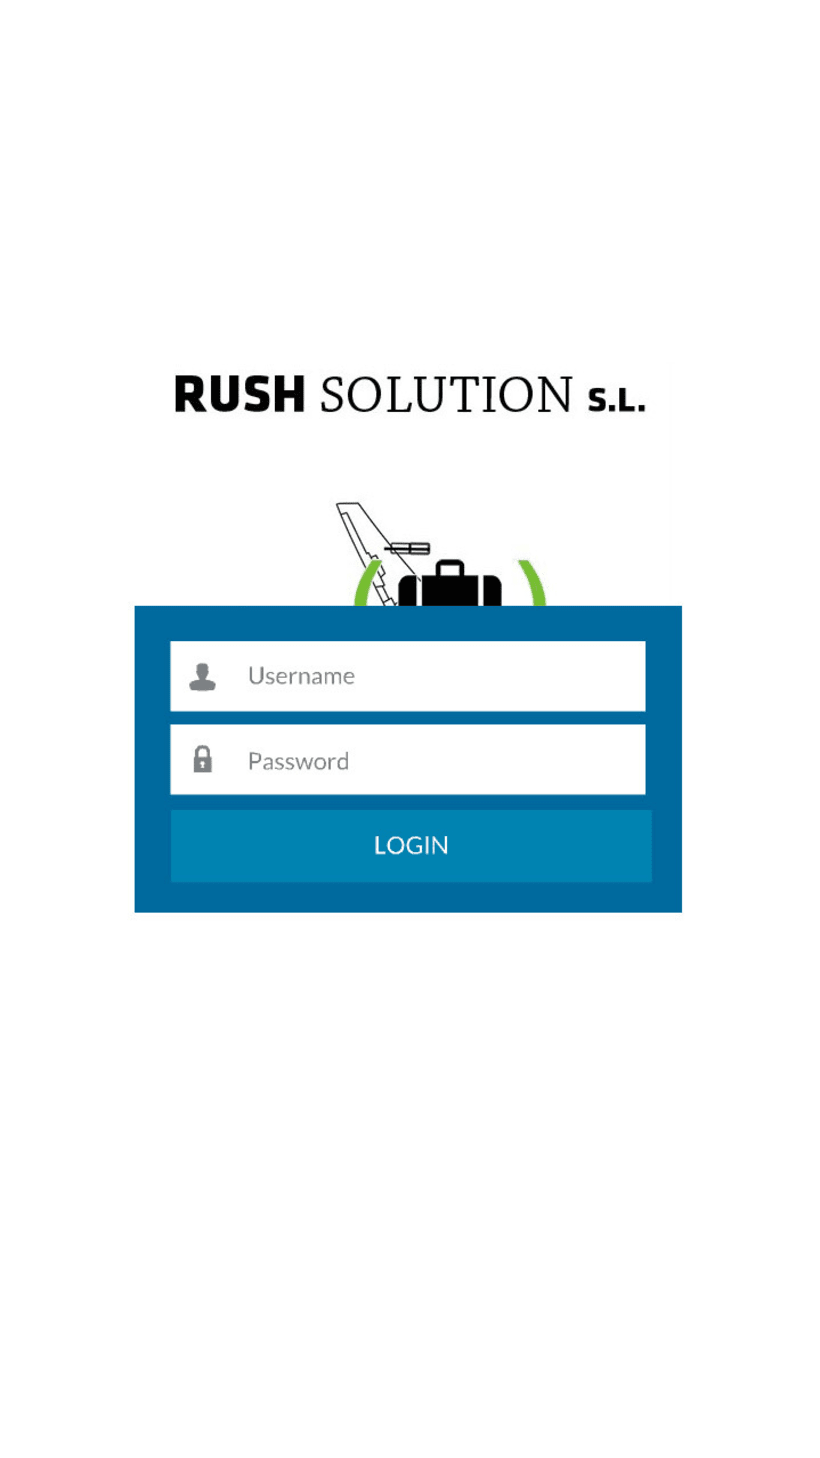 Rush Solution Aministrator,App para empresa de reparto, Android, PC e IOS 1